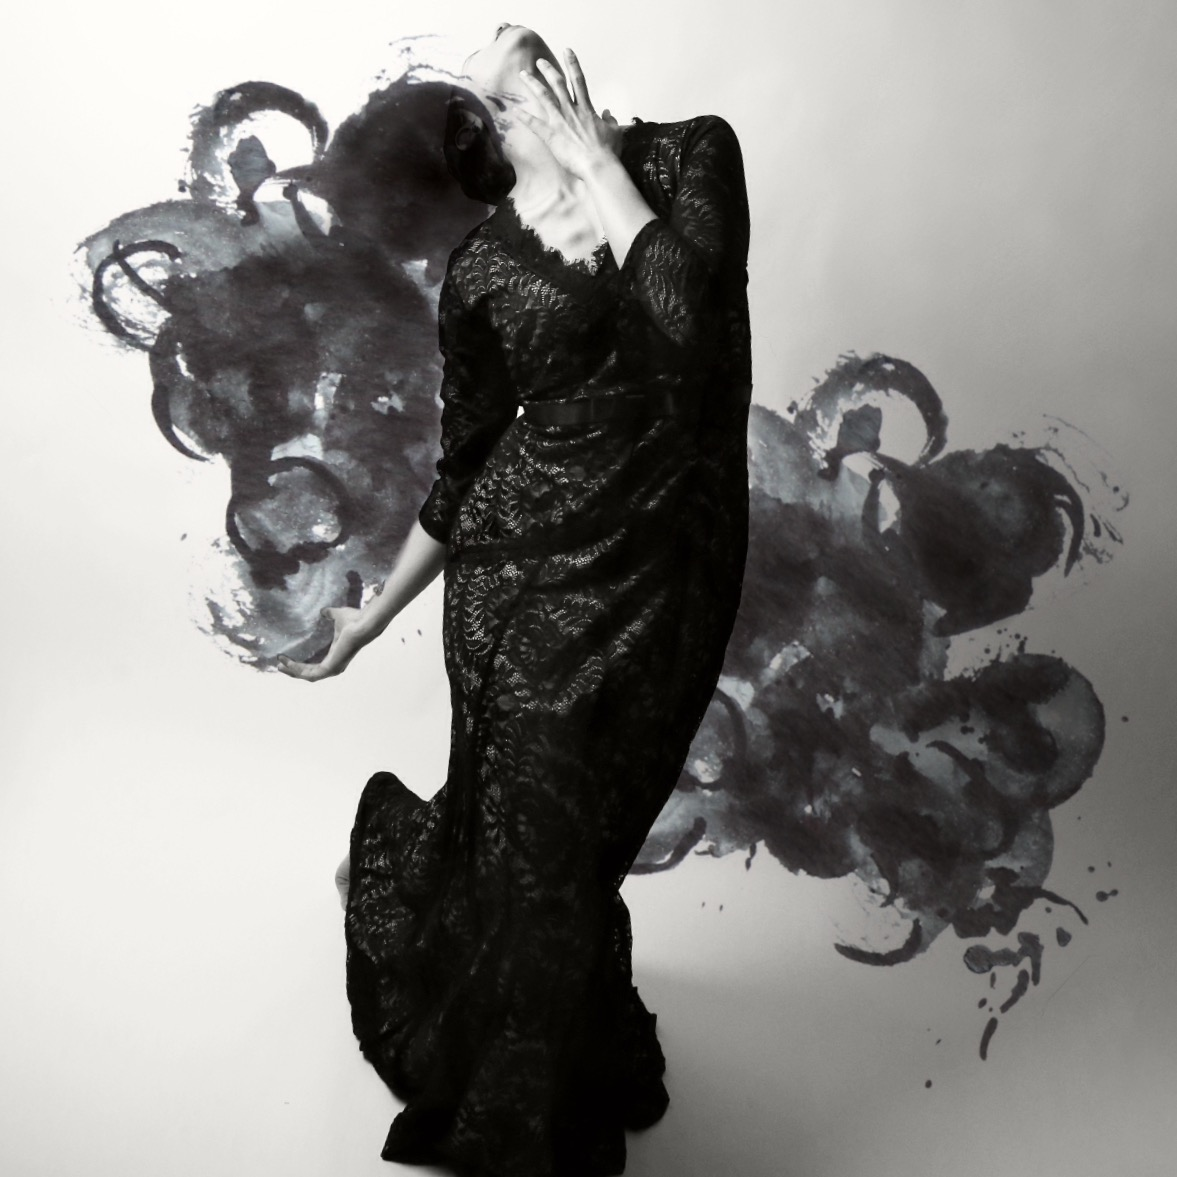 Tears As They Dry / Josephine Cardin (1)